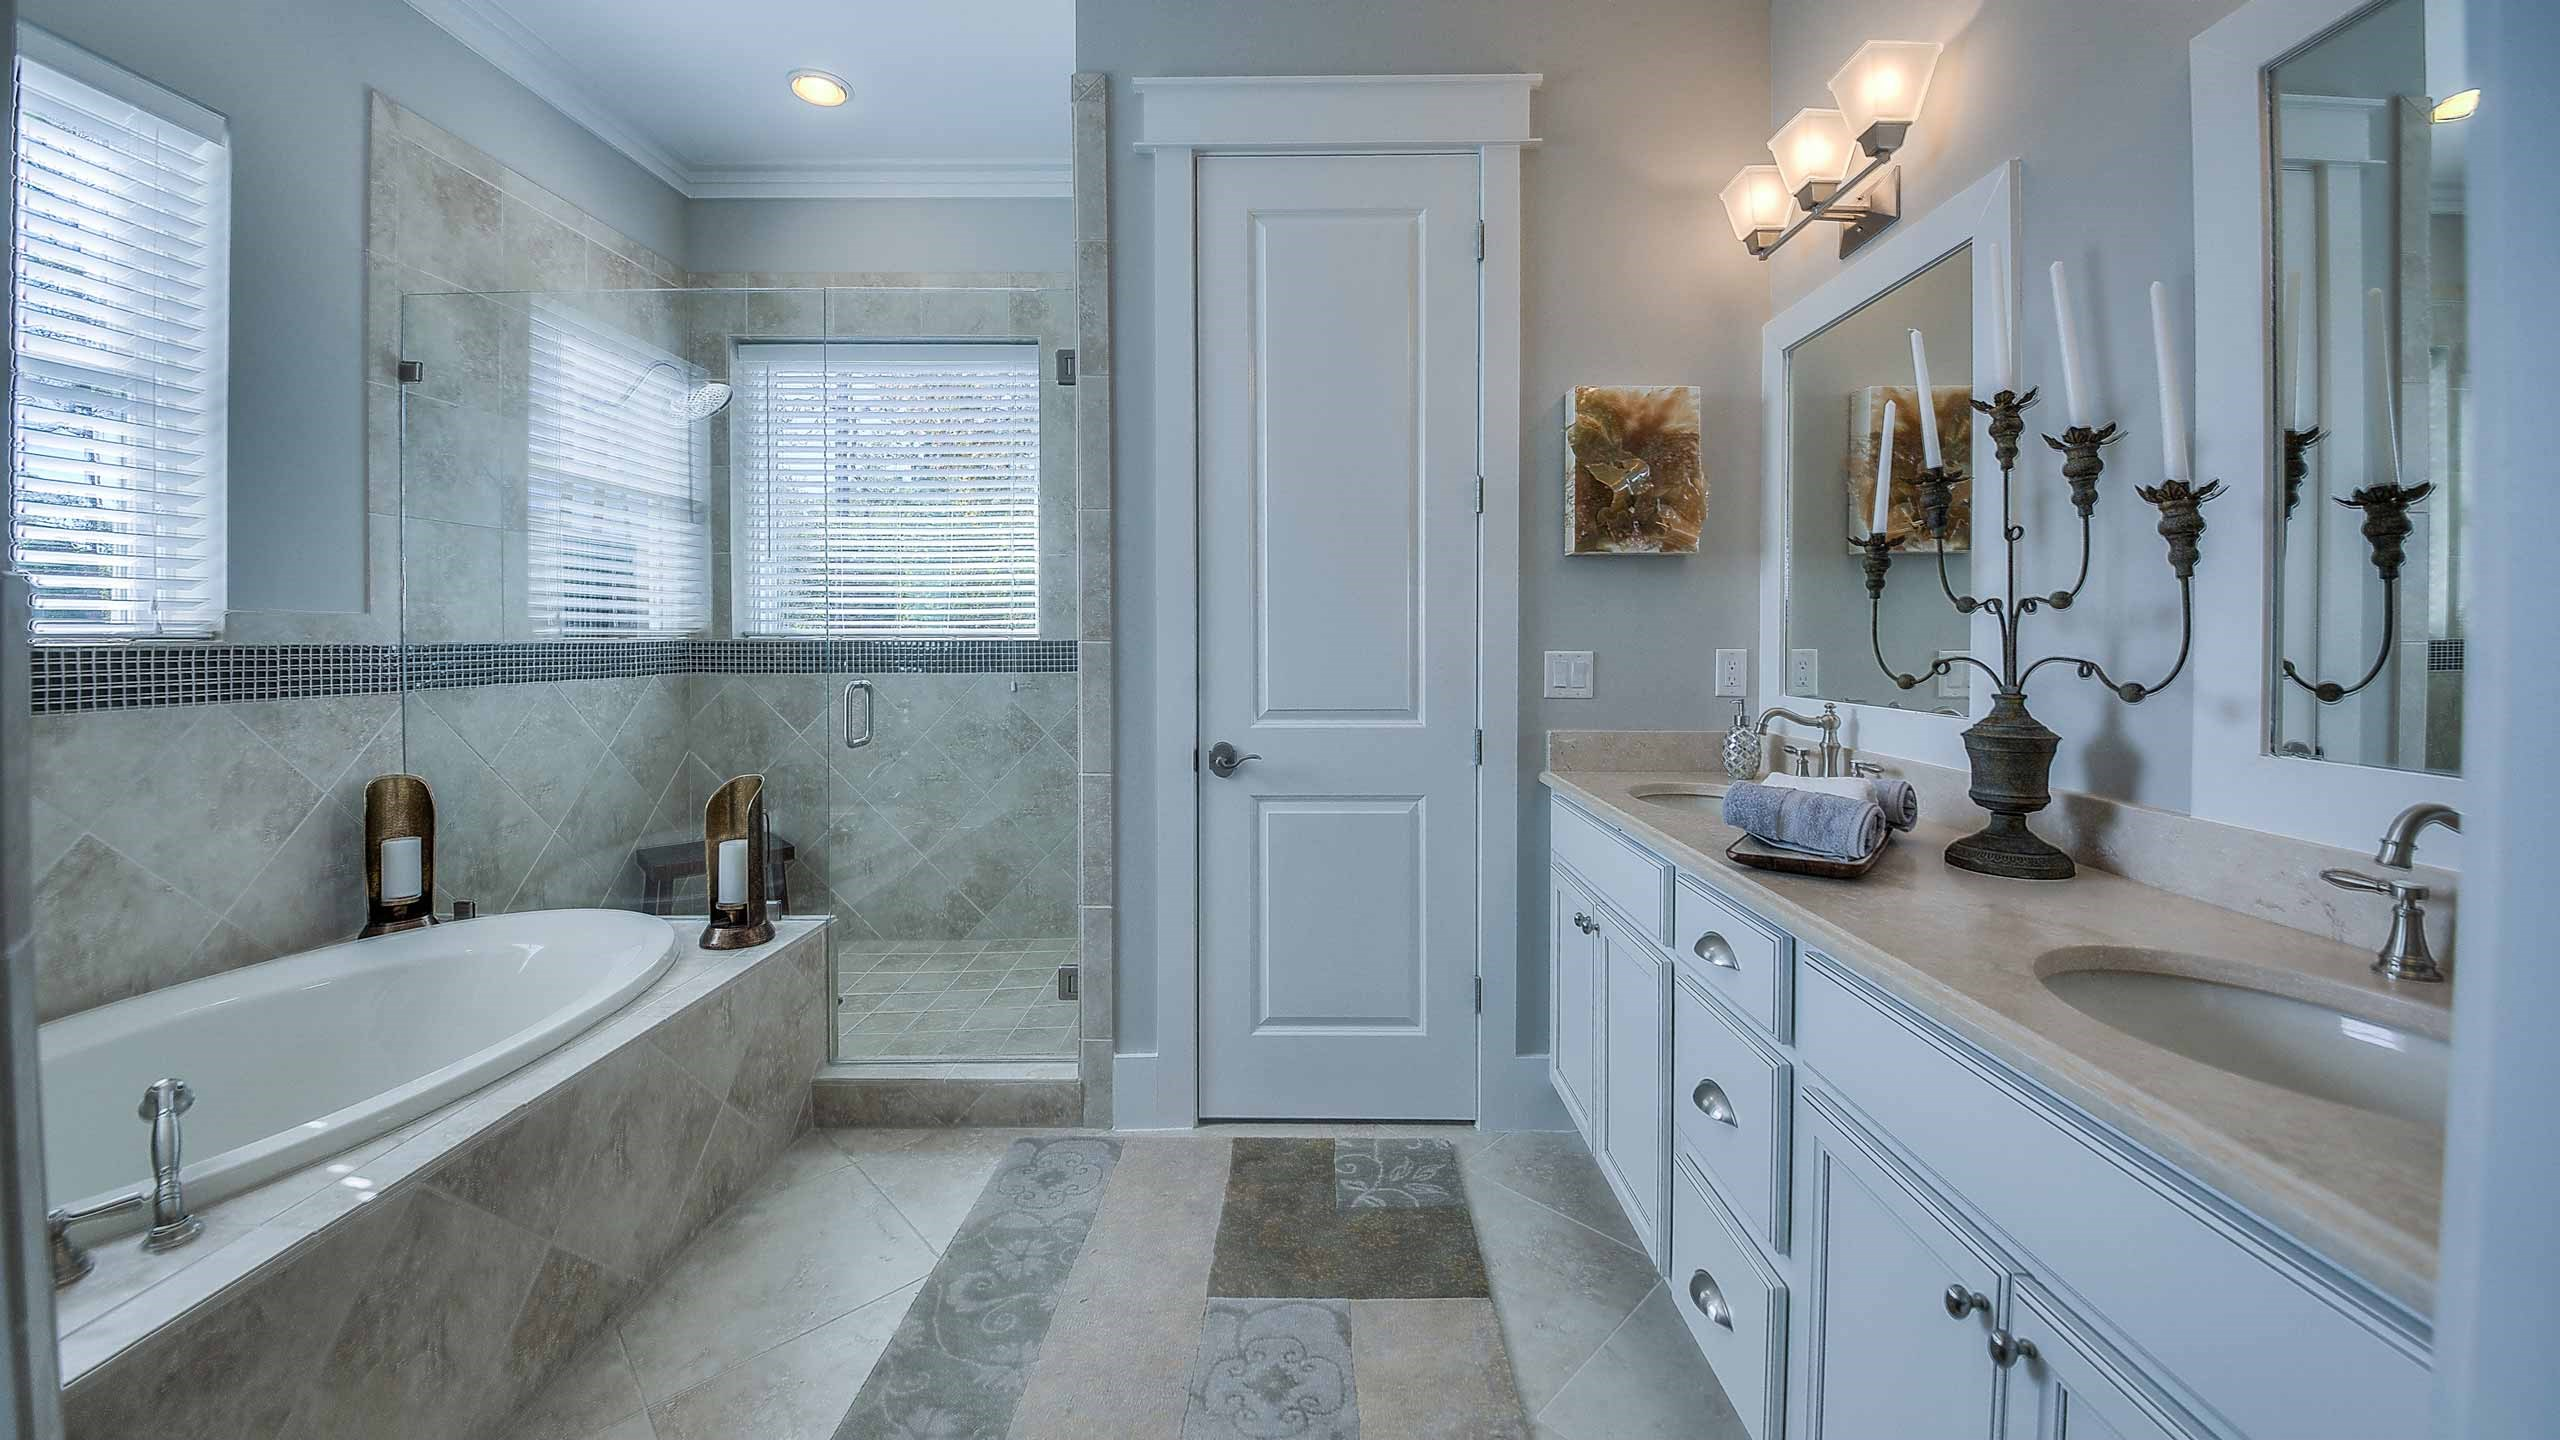 Bathroom Floor Song Naturewalk At Seagrove Wind Song New 30a Home In Santa Rosa